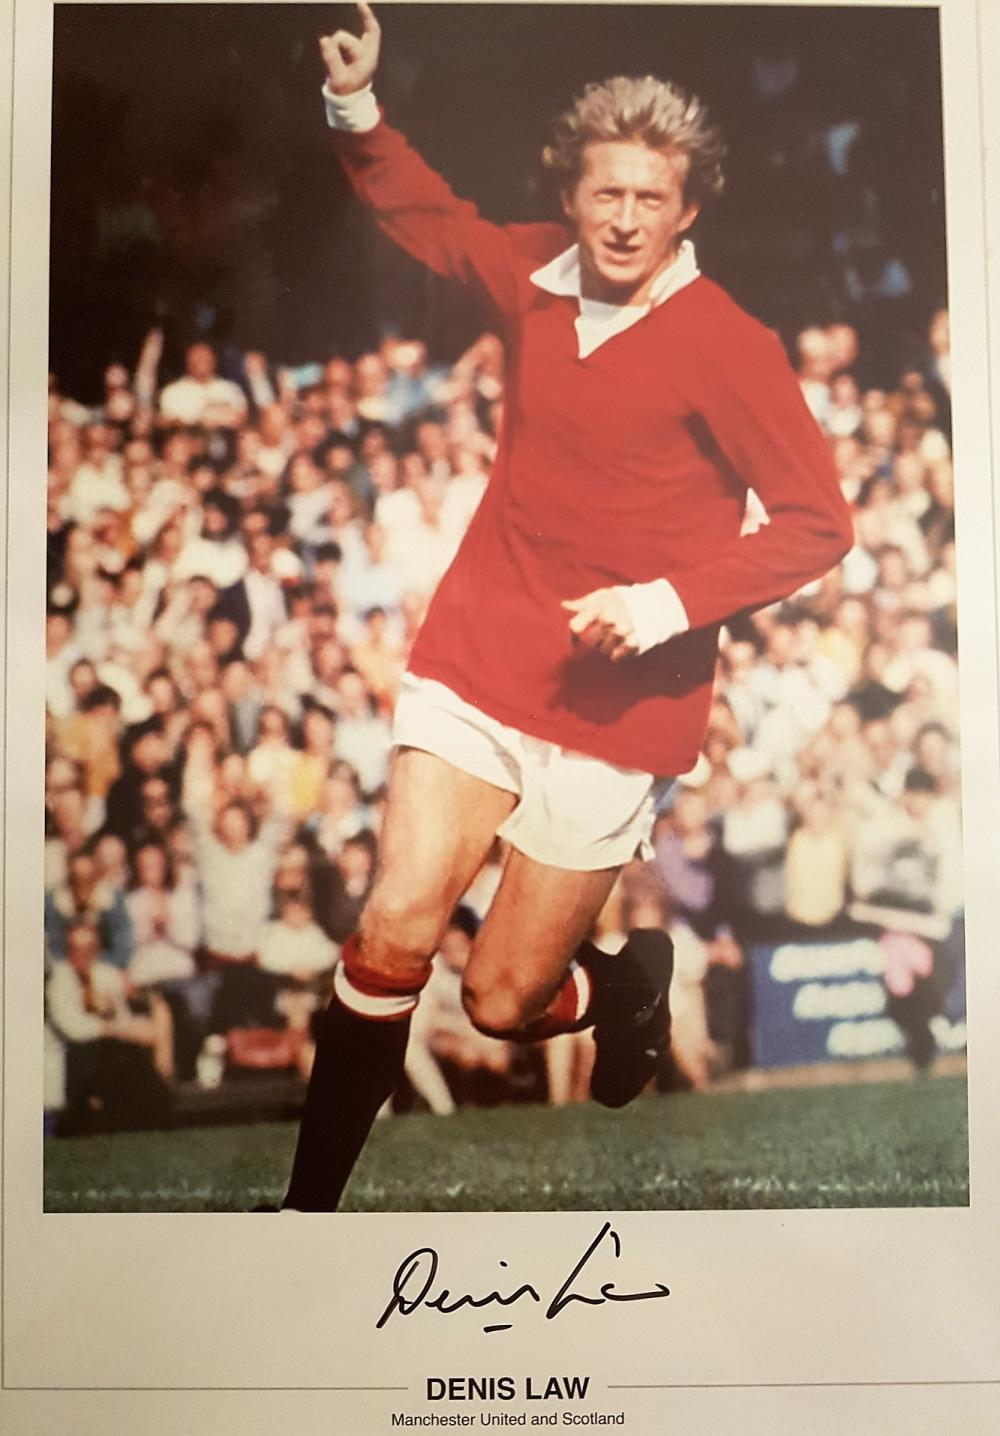 Lot 133: Denis Law signed print (no 3) - Denis Law signed for Manchester United in 1962, setting another British record transfer fee of œ115,000. He spent 11 years at Manchester United, where he scored 237 goals in 404 appearances. His goals tally